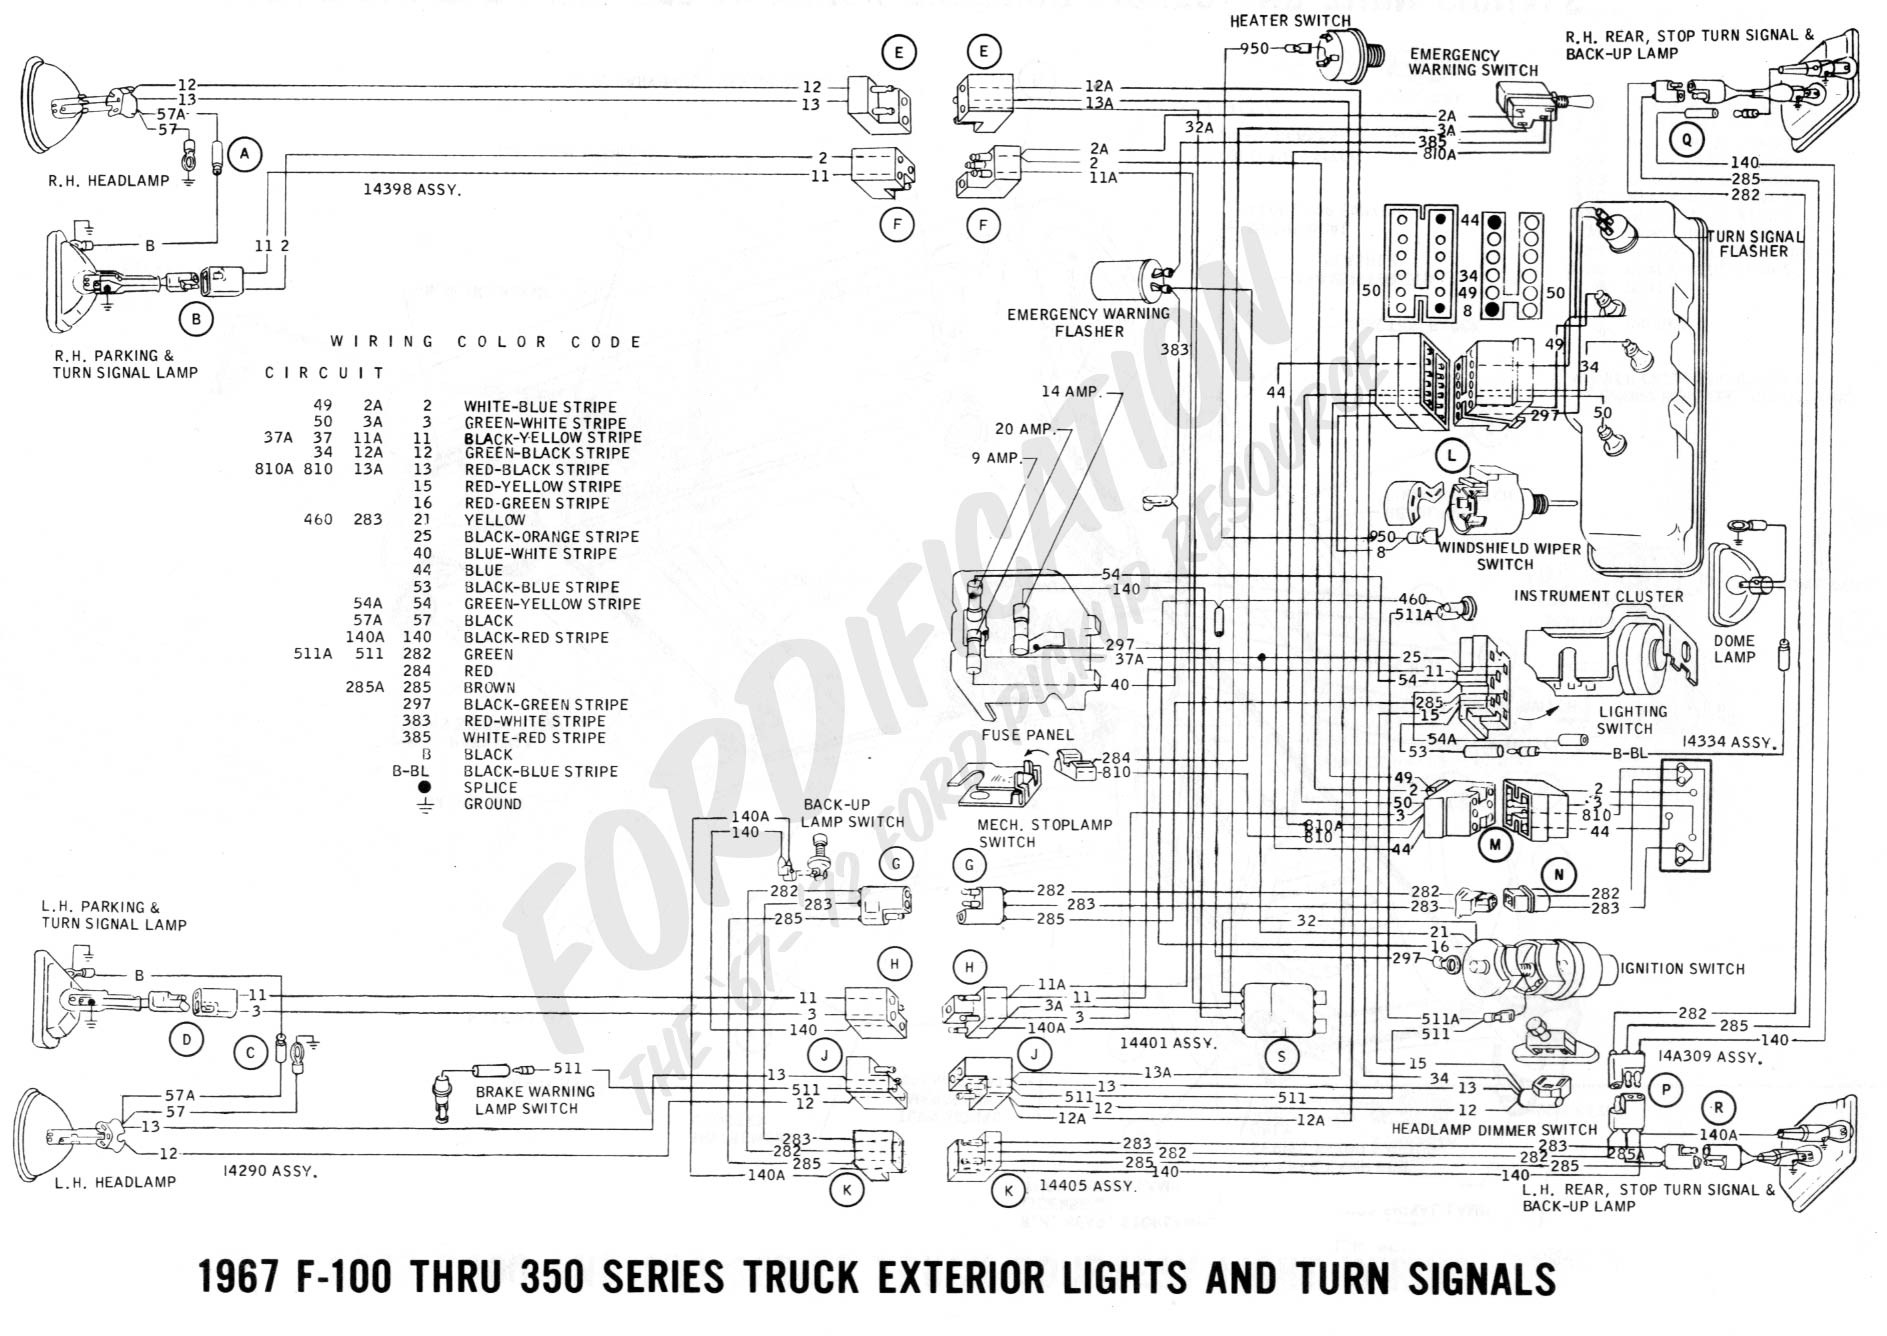 Atlas Trailer Wiring Diagram | Wiring Diagram